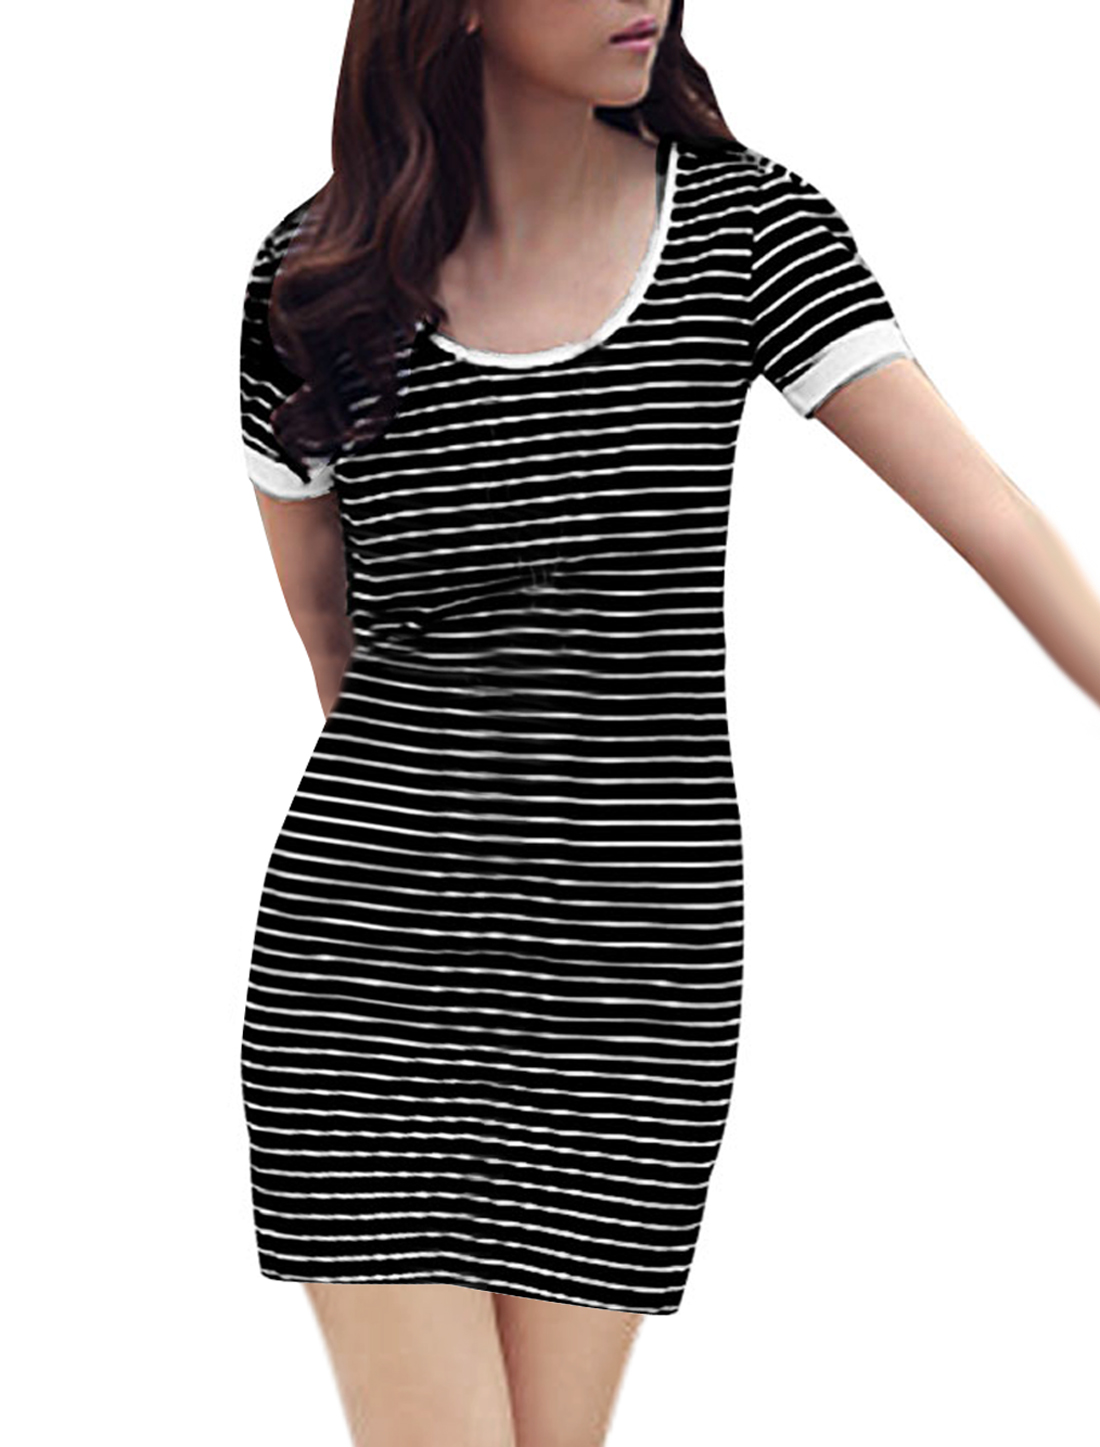 Lady Black White Scoop Neck Short Sleeve Stripes Butterfly Knot Back Mini Dress XS